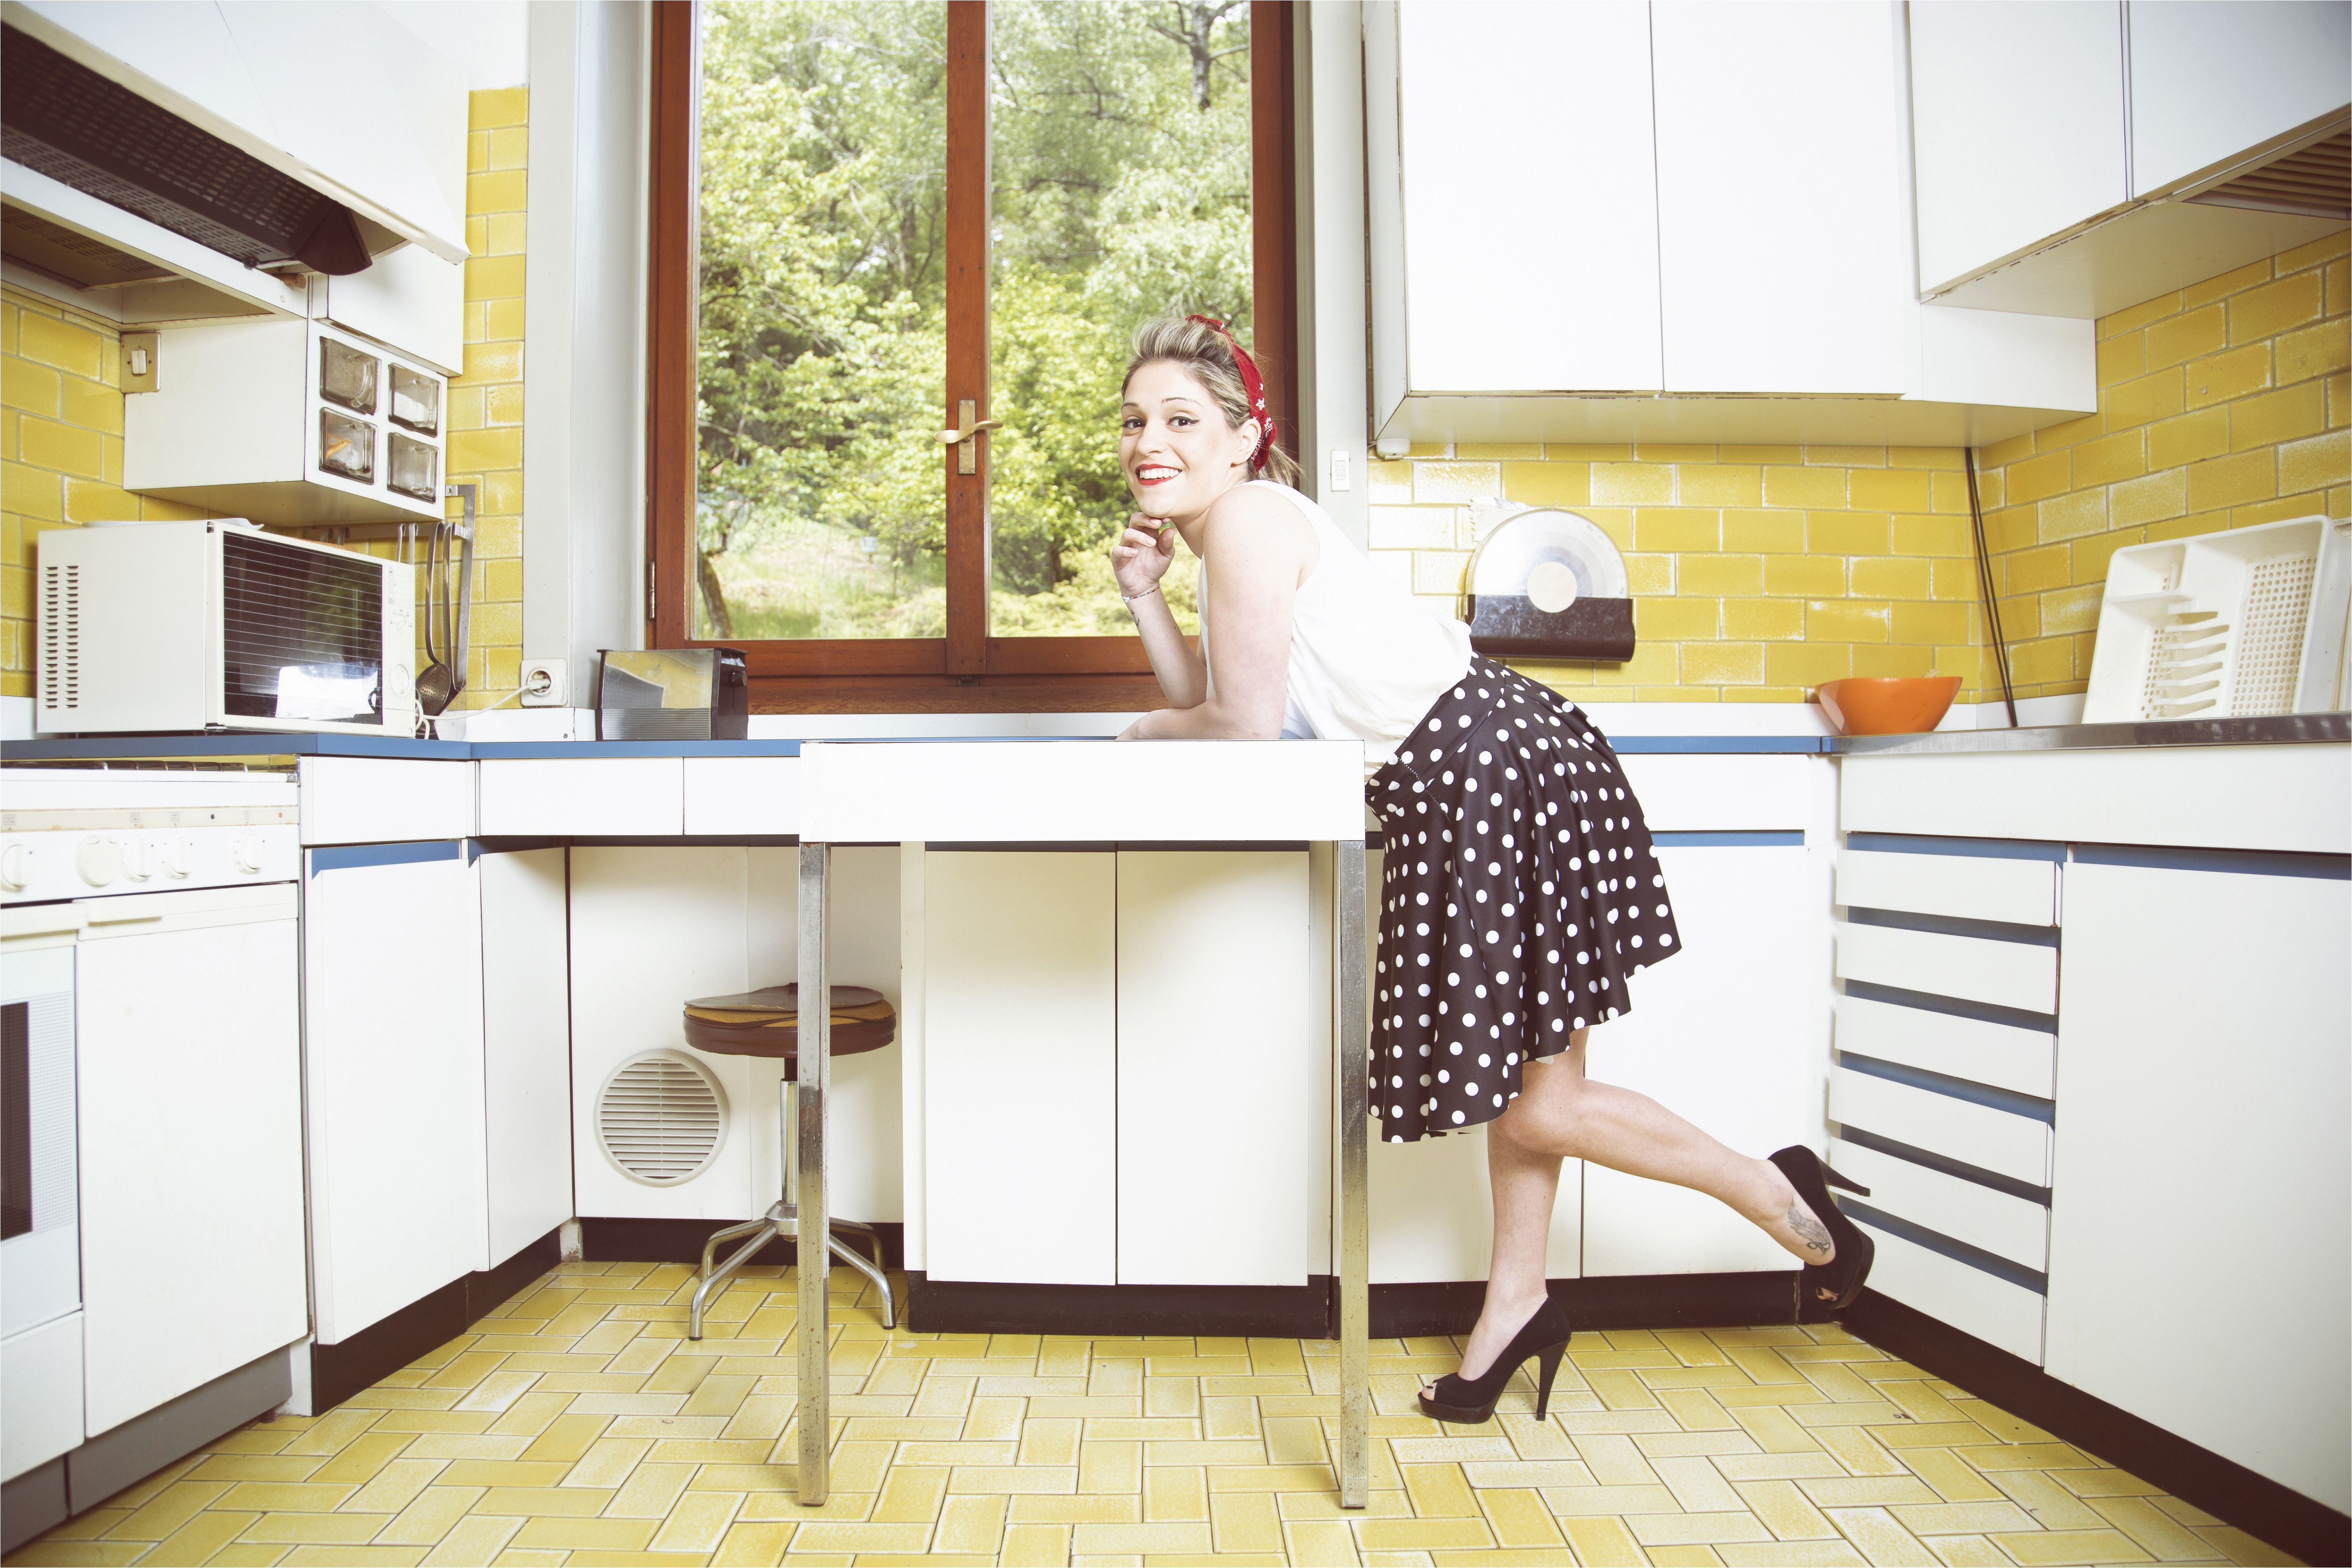 portrait of young woman in vintage clothes in vintage kitchen 507828505 5b1af2dd8023b9003678349e jpg